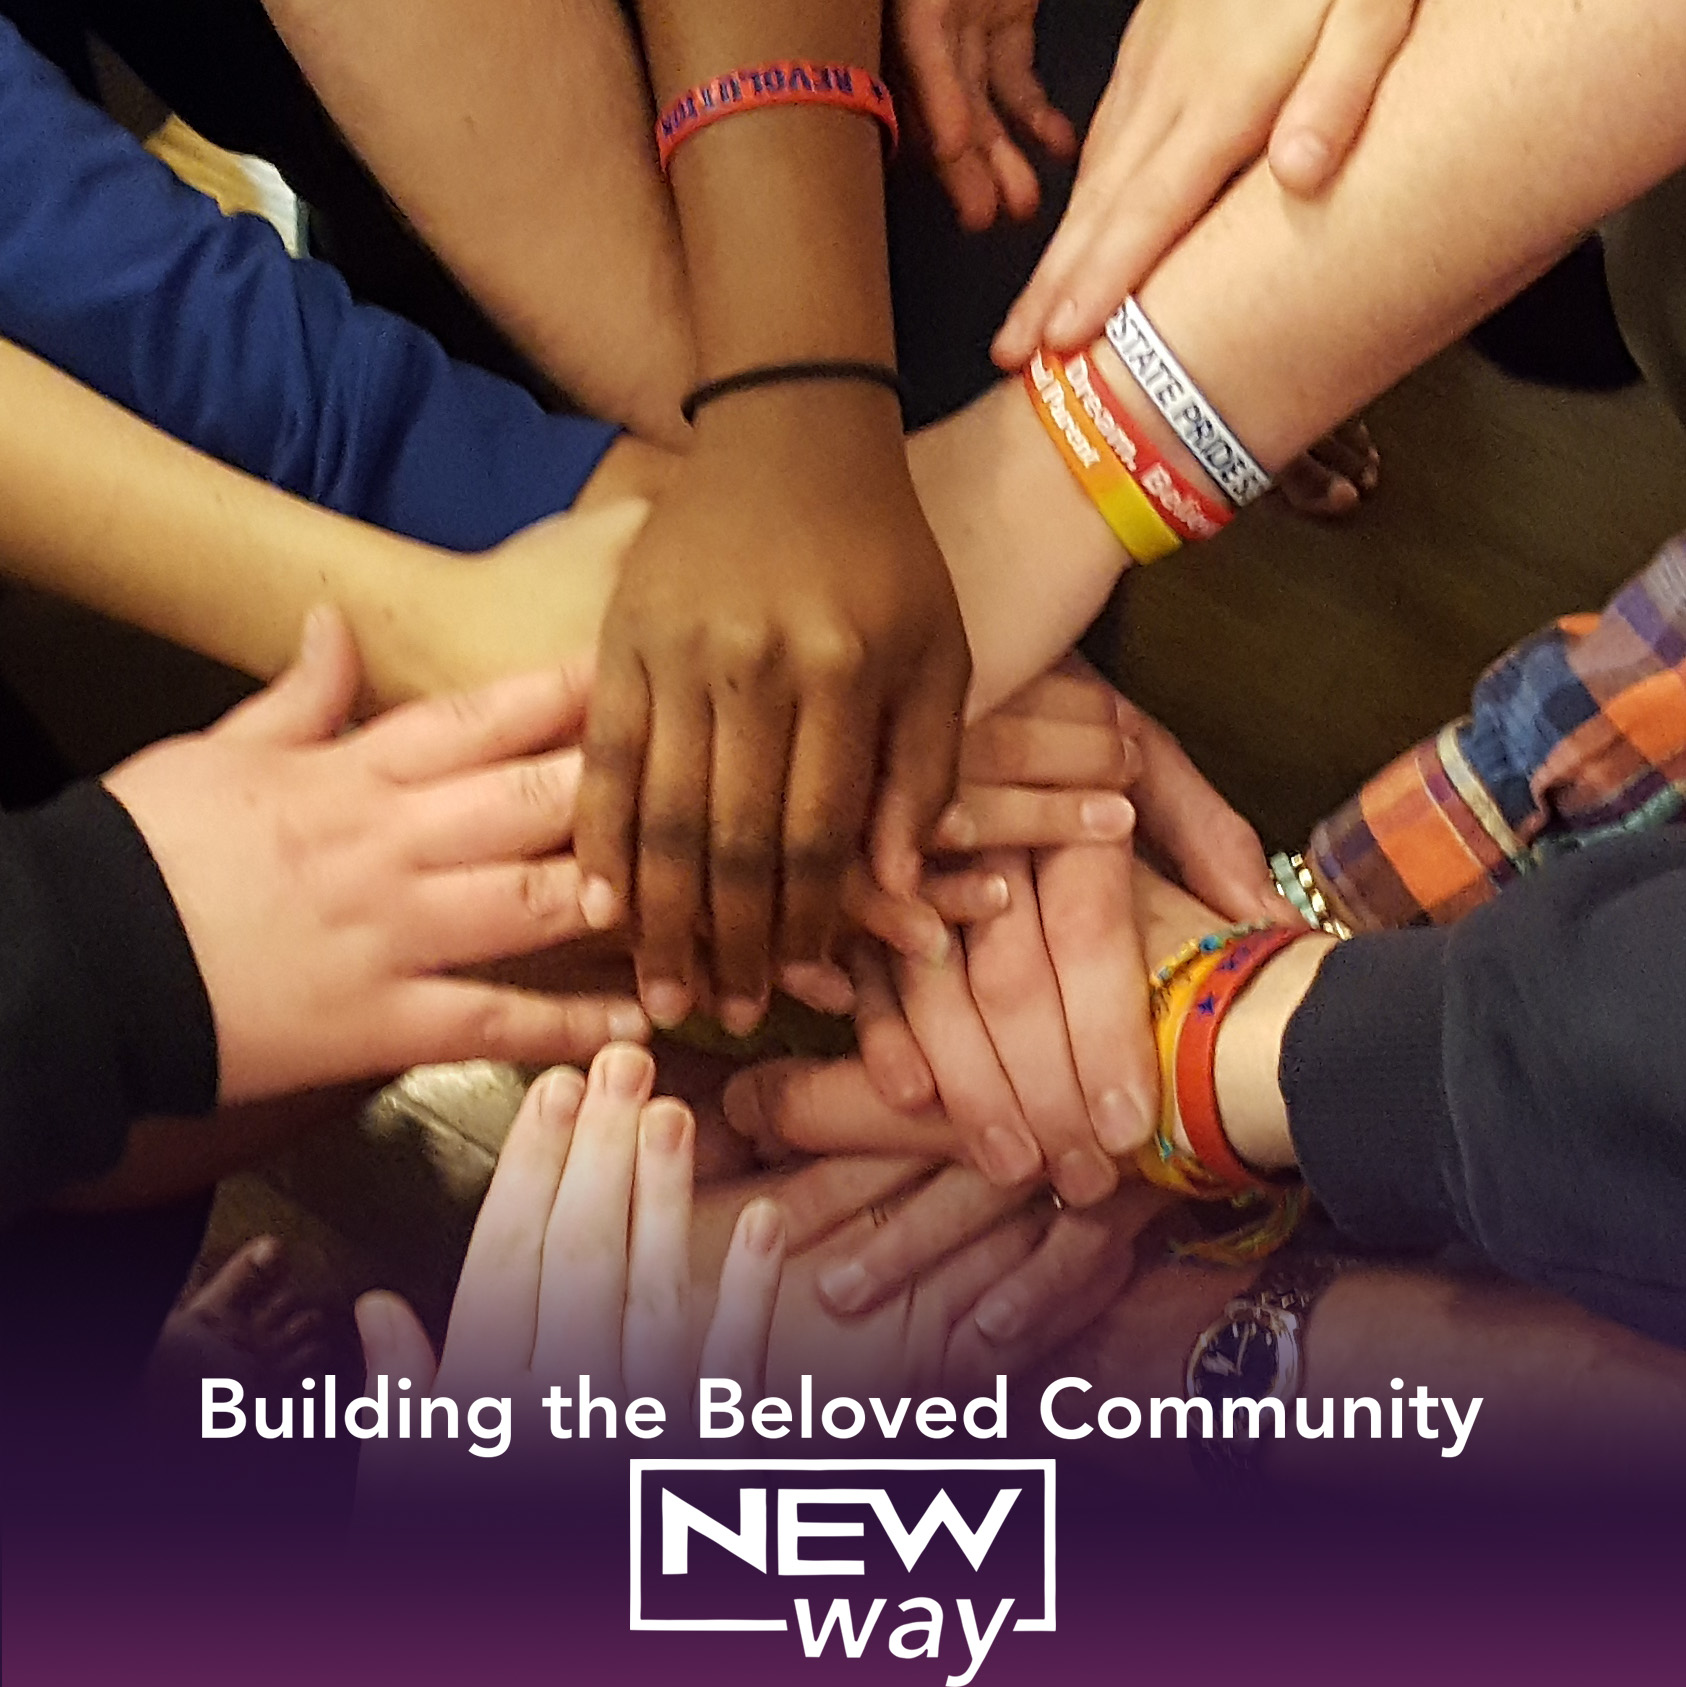 New Way, Beloved Community, Nonviolence, Conflict Reconciliation, Unity